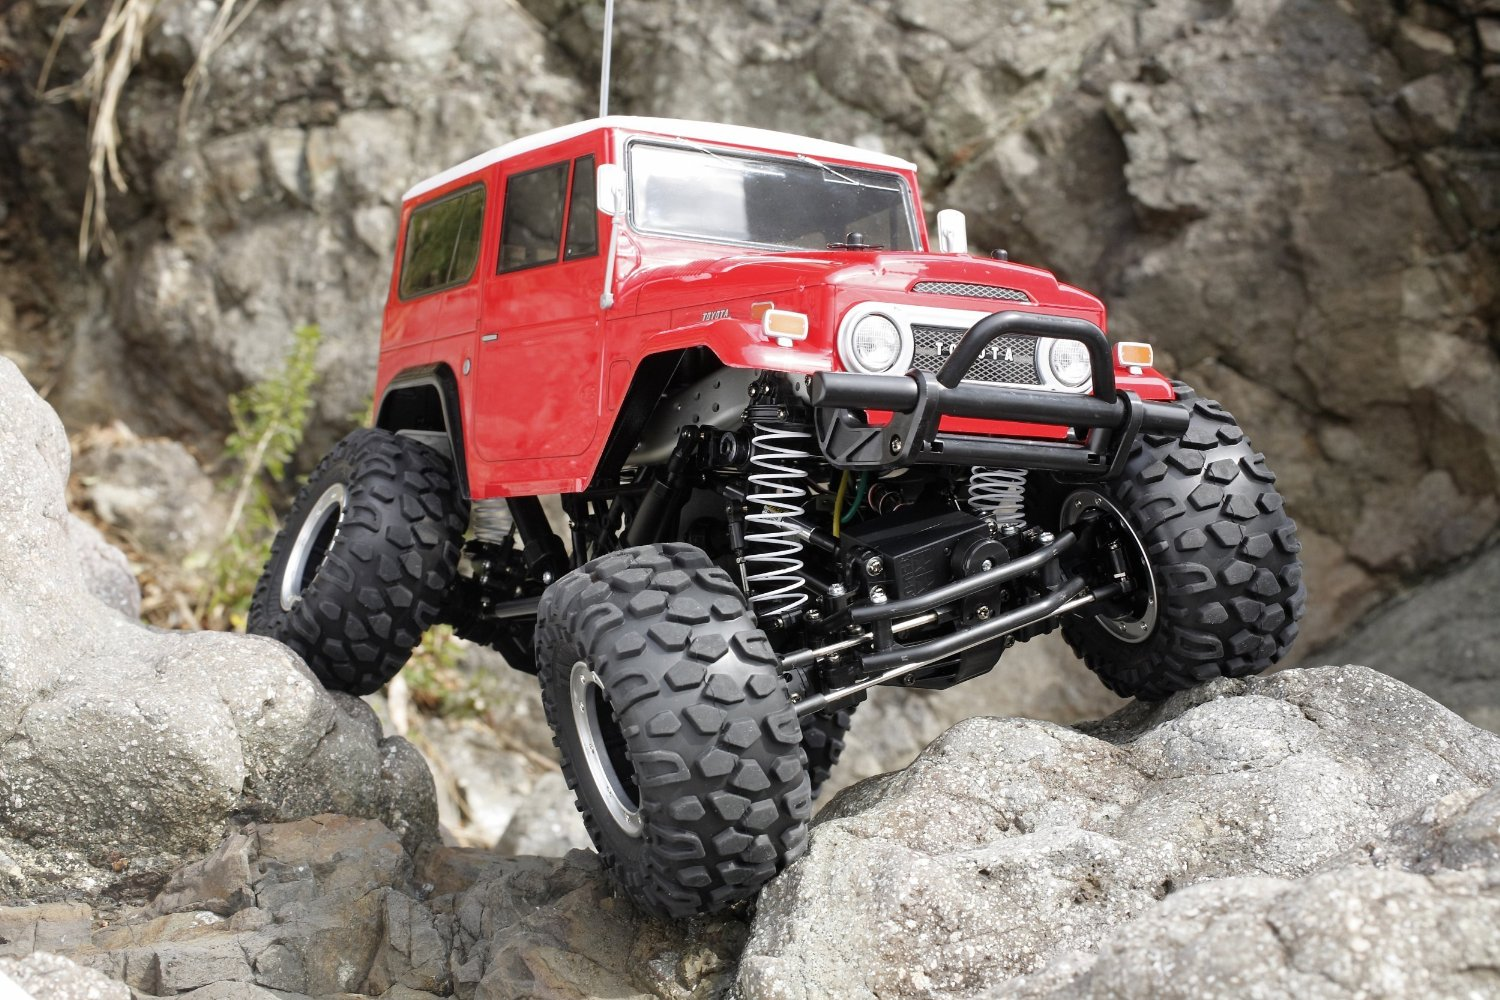 best rc trucks for kids with Check Out This Rc Toyota Land Cruiser 40 on ments also Helicopter Toy Remote Control 2015 additionally 123637419 also Axial Yeti Rock Racer Kit 3 Copy together with Check Out This Rc Toyota Land Cruiser 40.